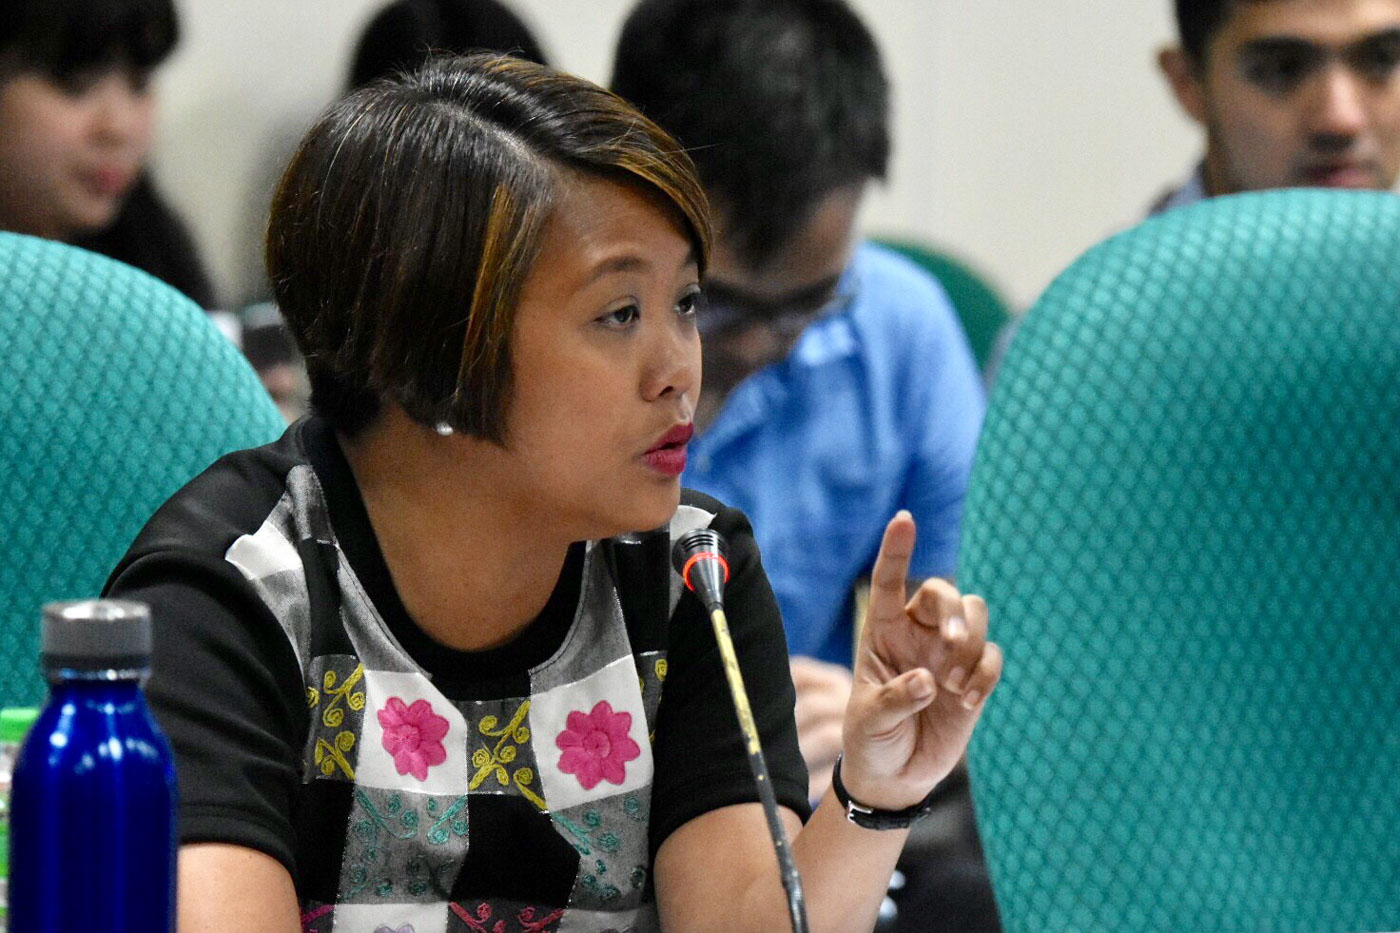 BEAUTY. Senator Nancy Binay jokes that beauty is her strength as a candidate, following her high ratings in pre-election surveys. Photo by Angie de Silva/Rappler